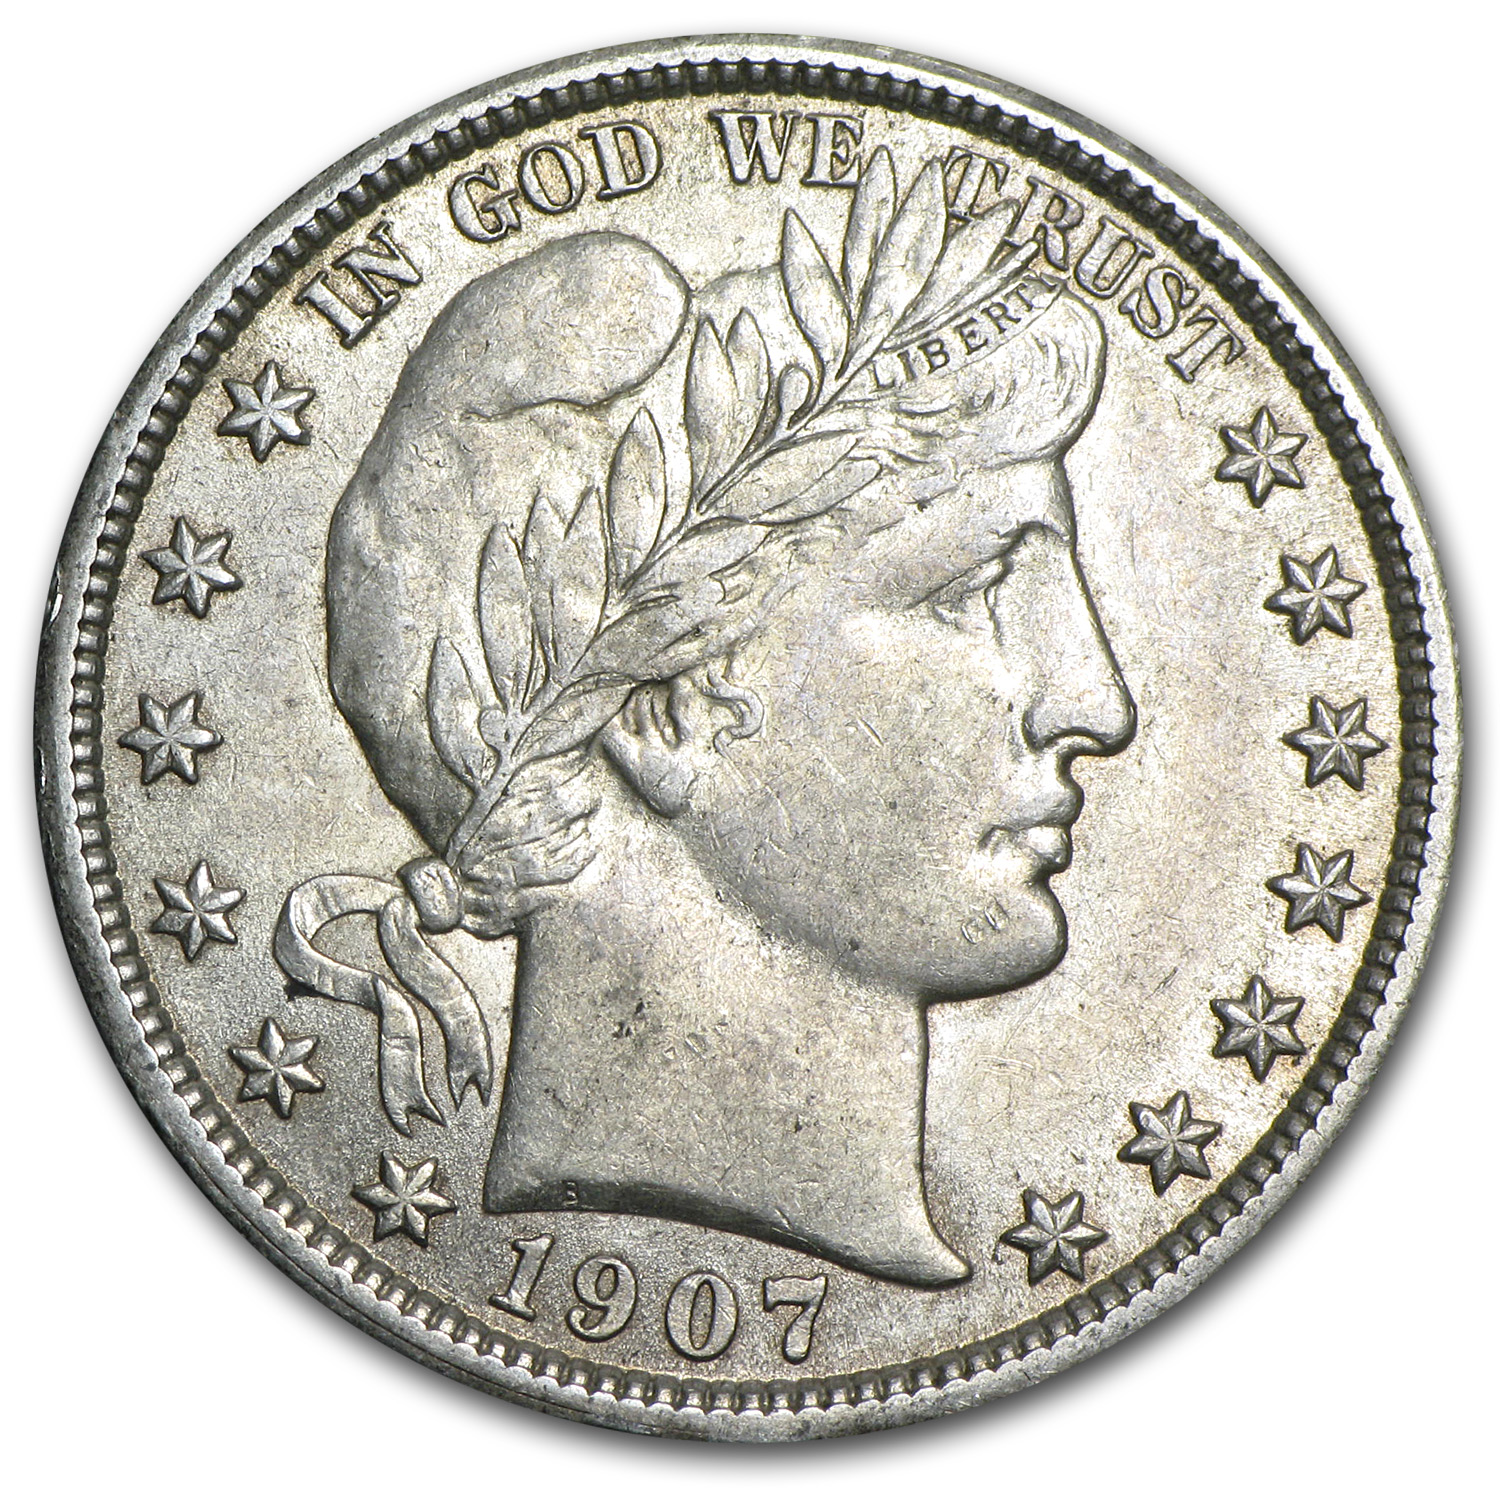 1907 Barber Half Dollar - Almost Uncirculated